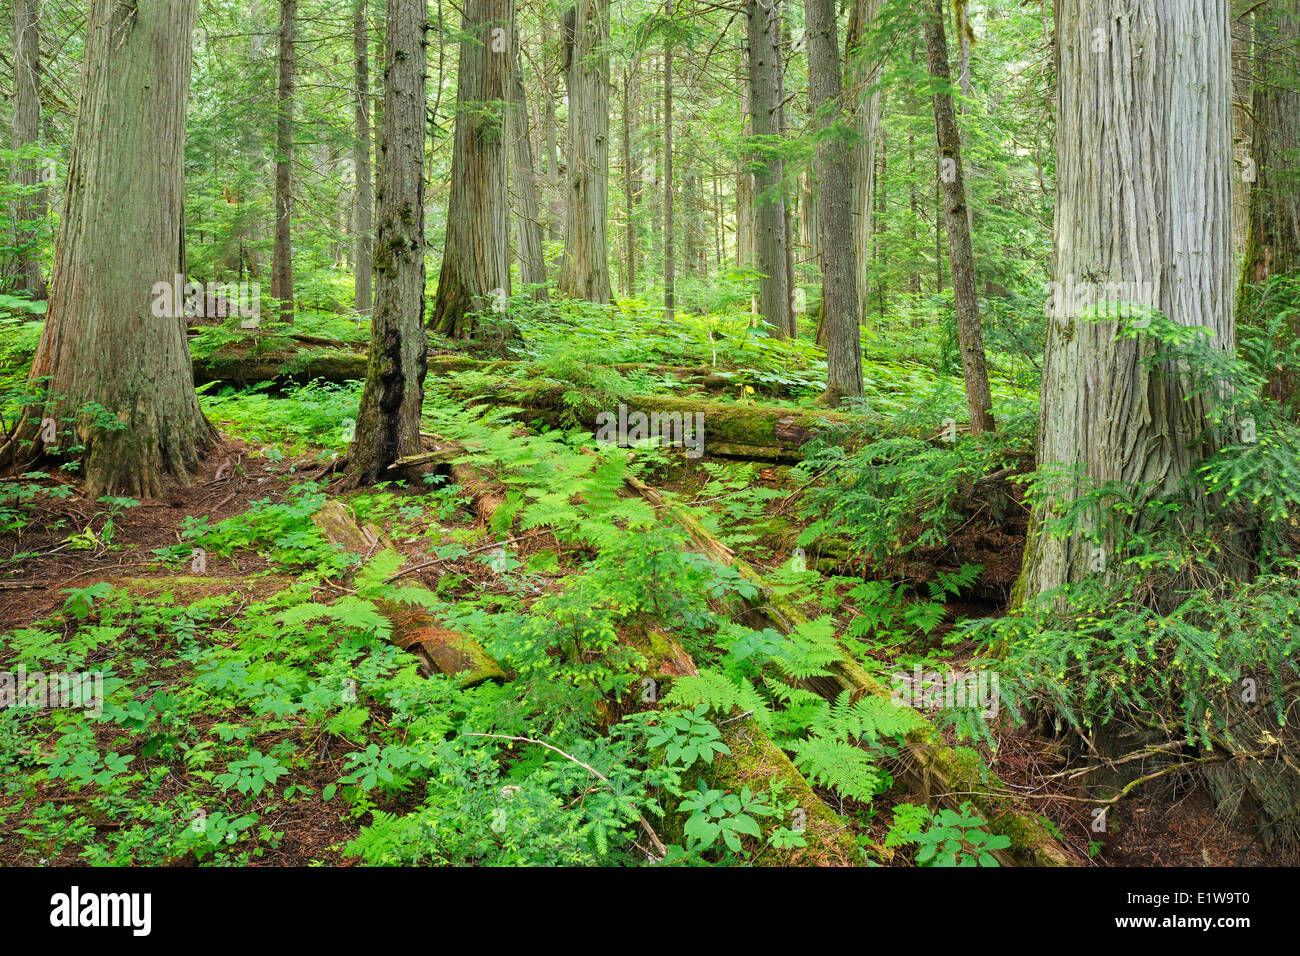 Old growth forest in Inland temperate rain forest on Giant Cedars Trail Mount Revelstoke National Park British Columbia - Stock Image